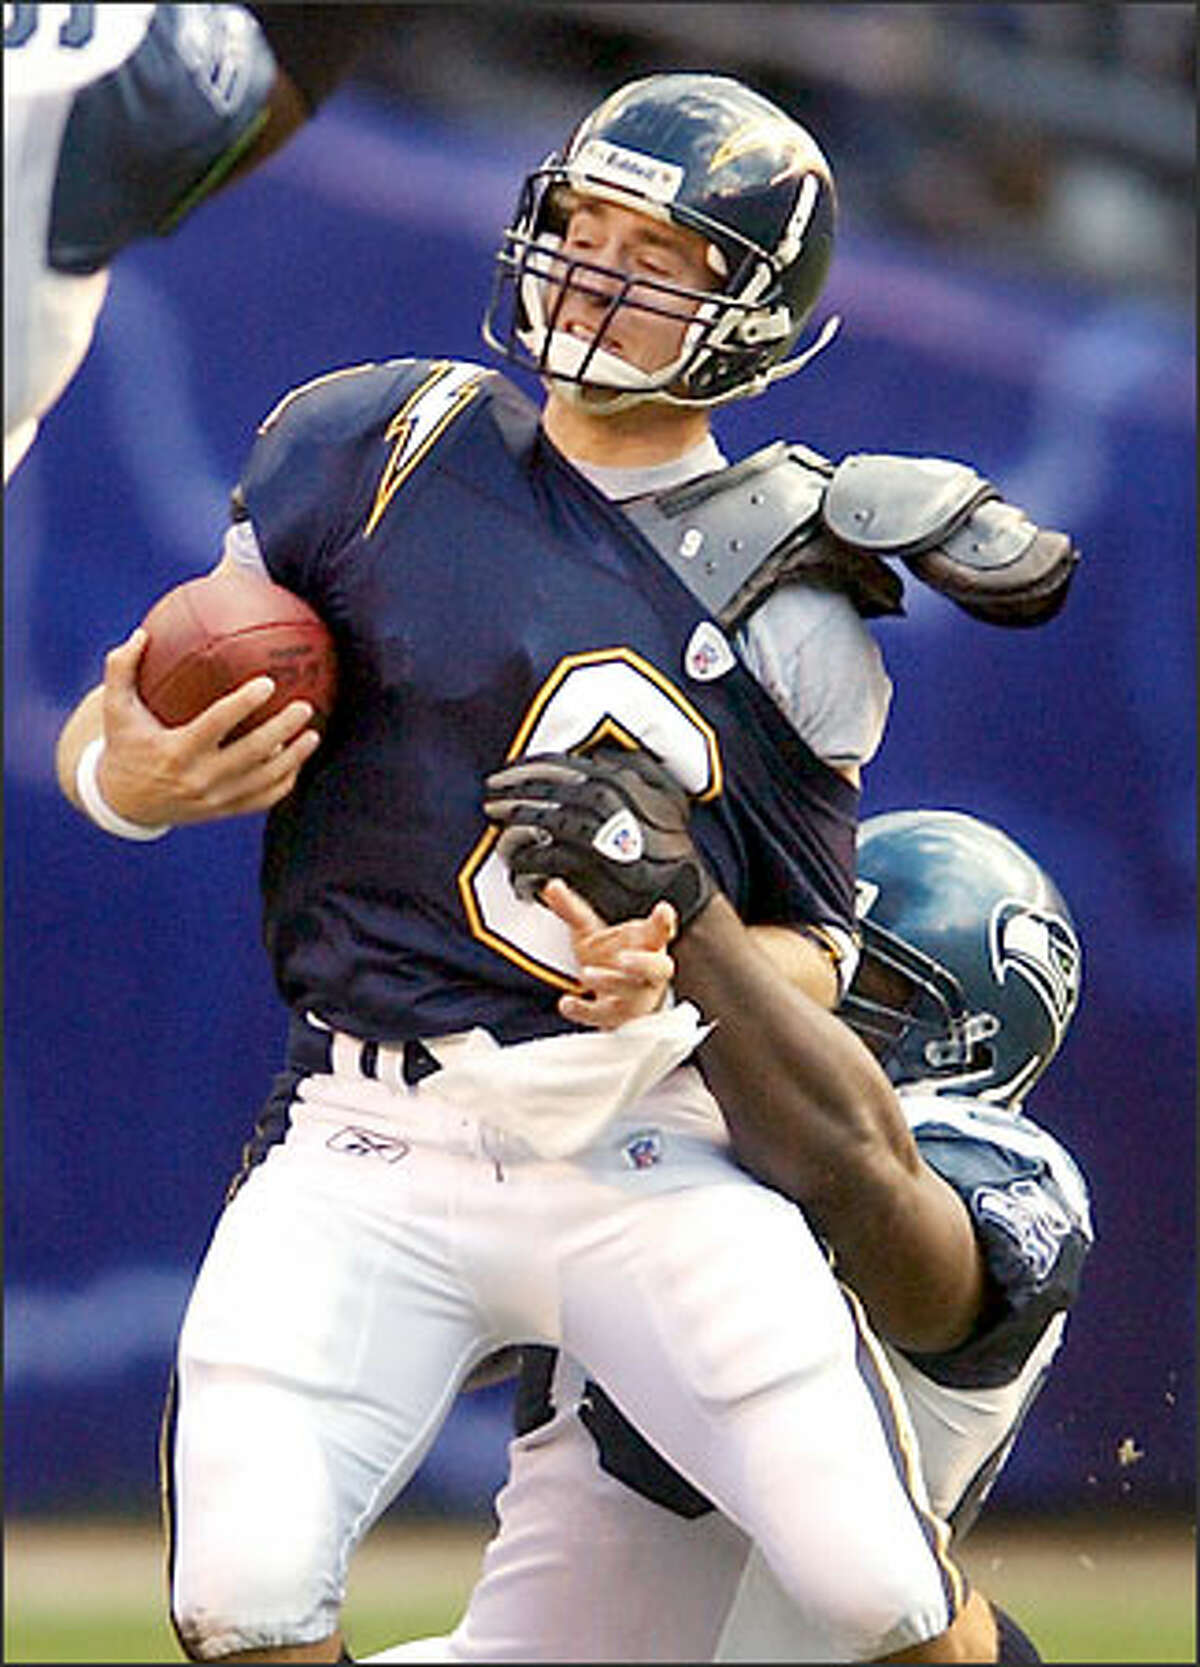 Seahawks tackle John Randle sacks San Diego quarterback Drew Brees for a 9-yard loss during the first quarter. Randle dropped Brees three times.